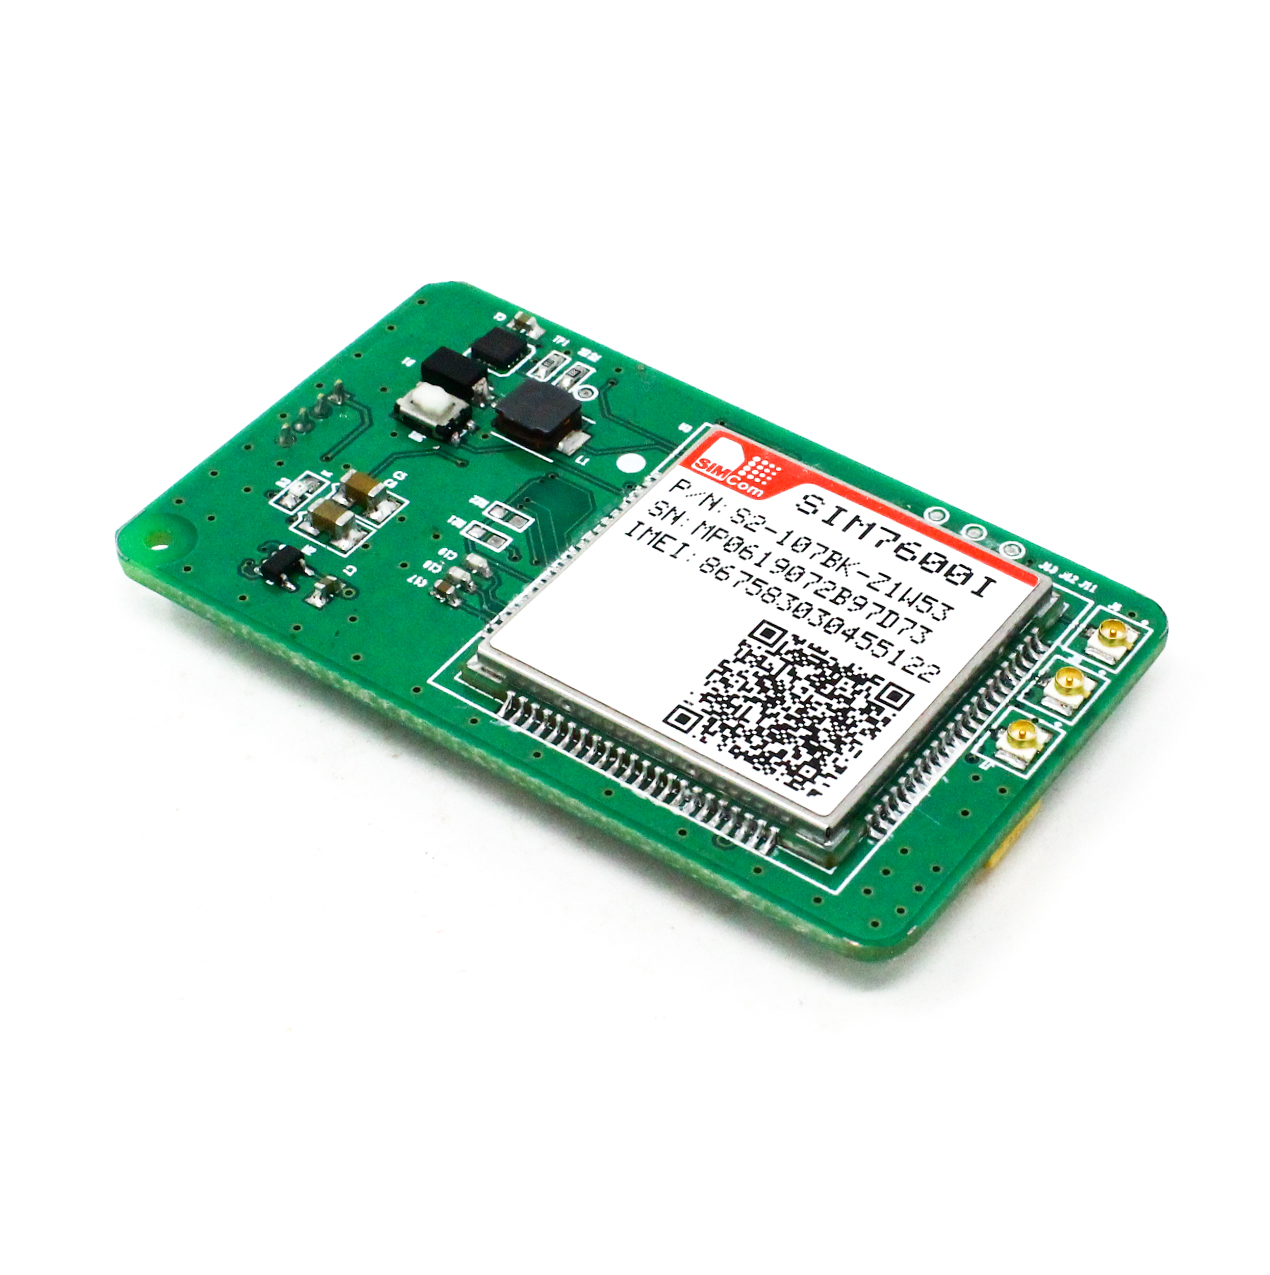 SIM7600I 4G LTE Breakout Board High-Speed Module GPS/GNSS IOT board -  Robu in | Indian Online Store | RC Hobby | Robotics